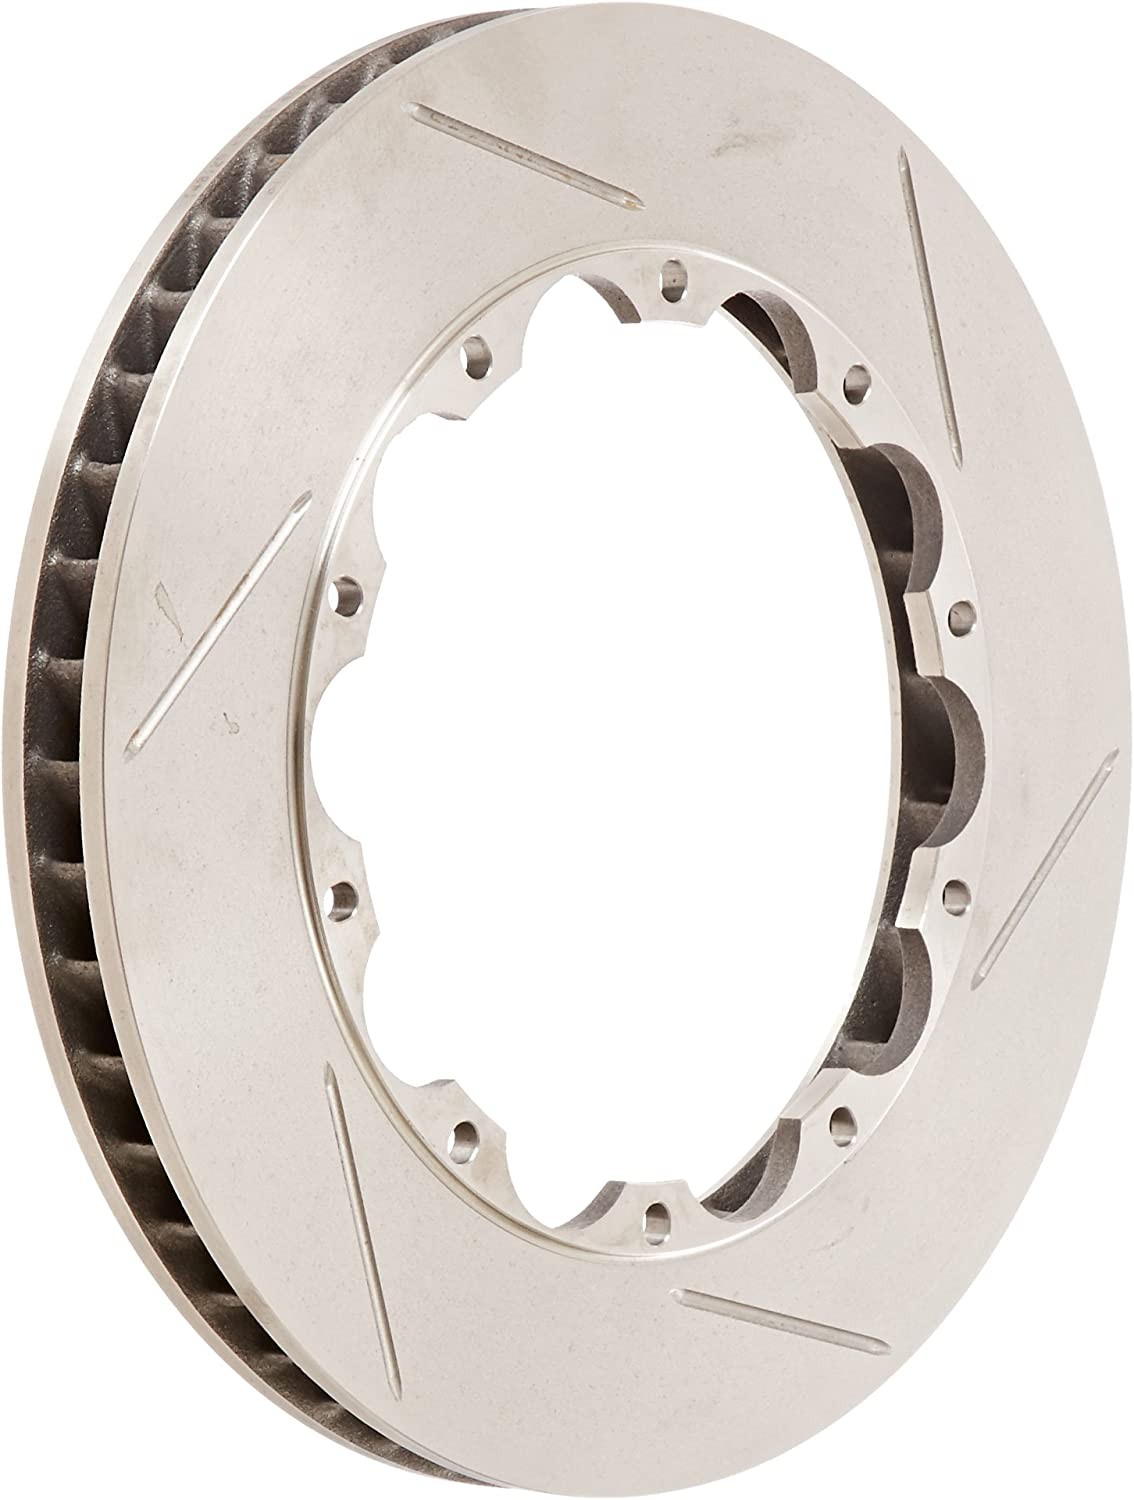 StopTech 31.536.1101.99 Brake Challenge the lowest price of Japan Rotor Some reservation